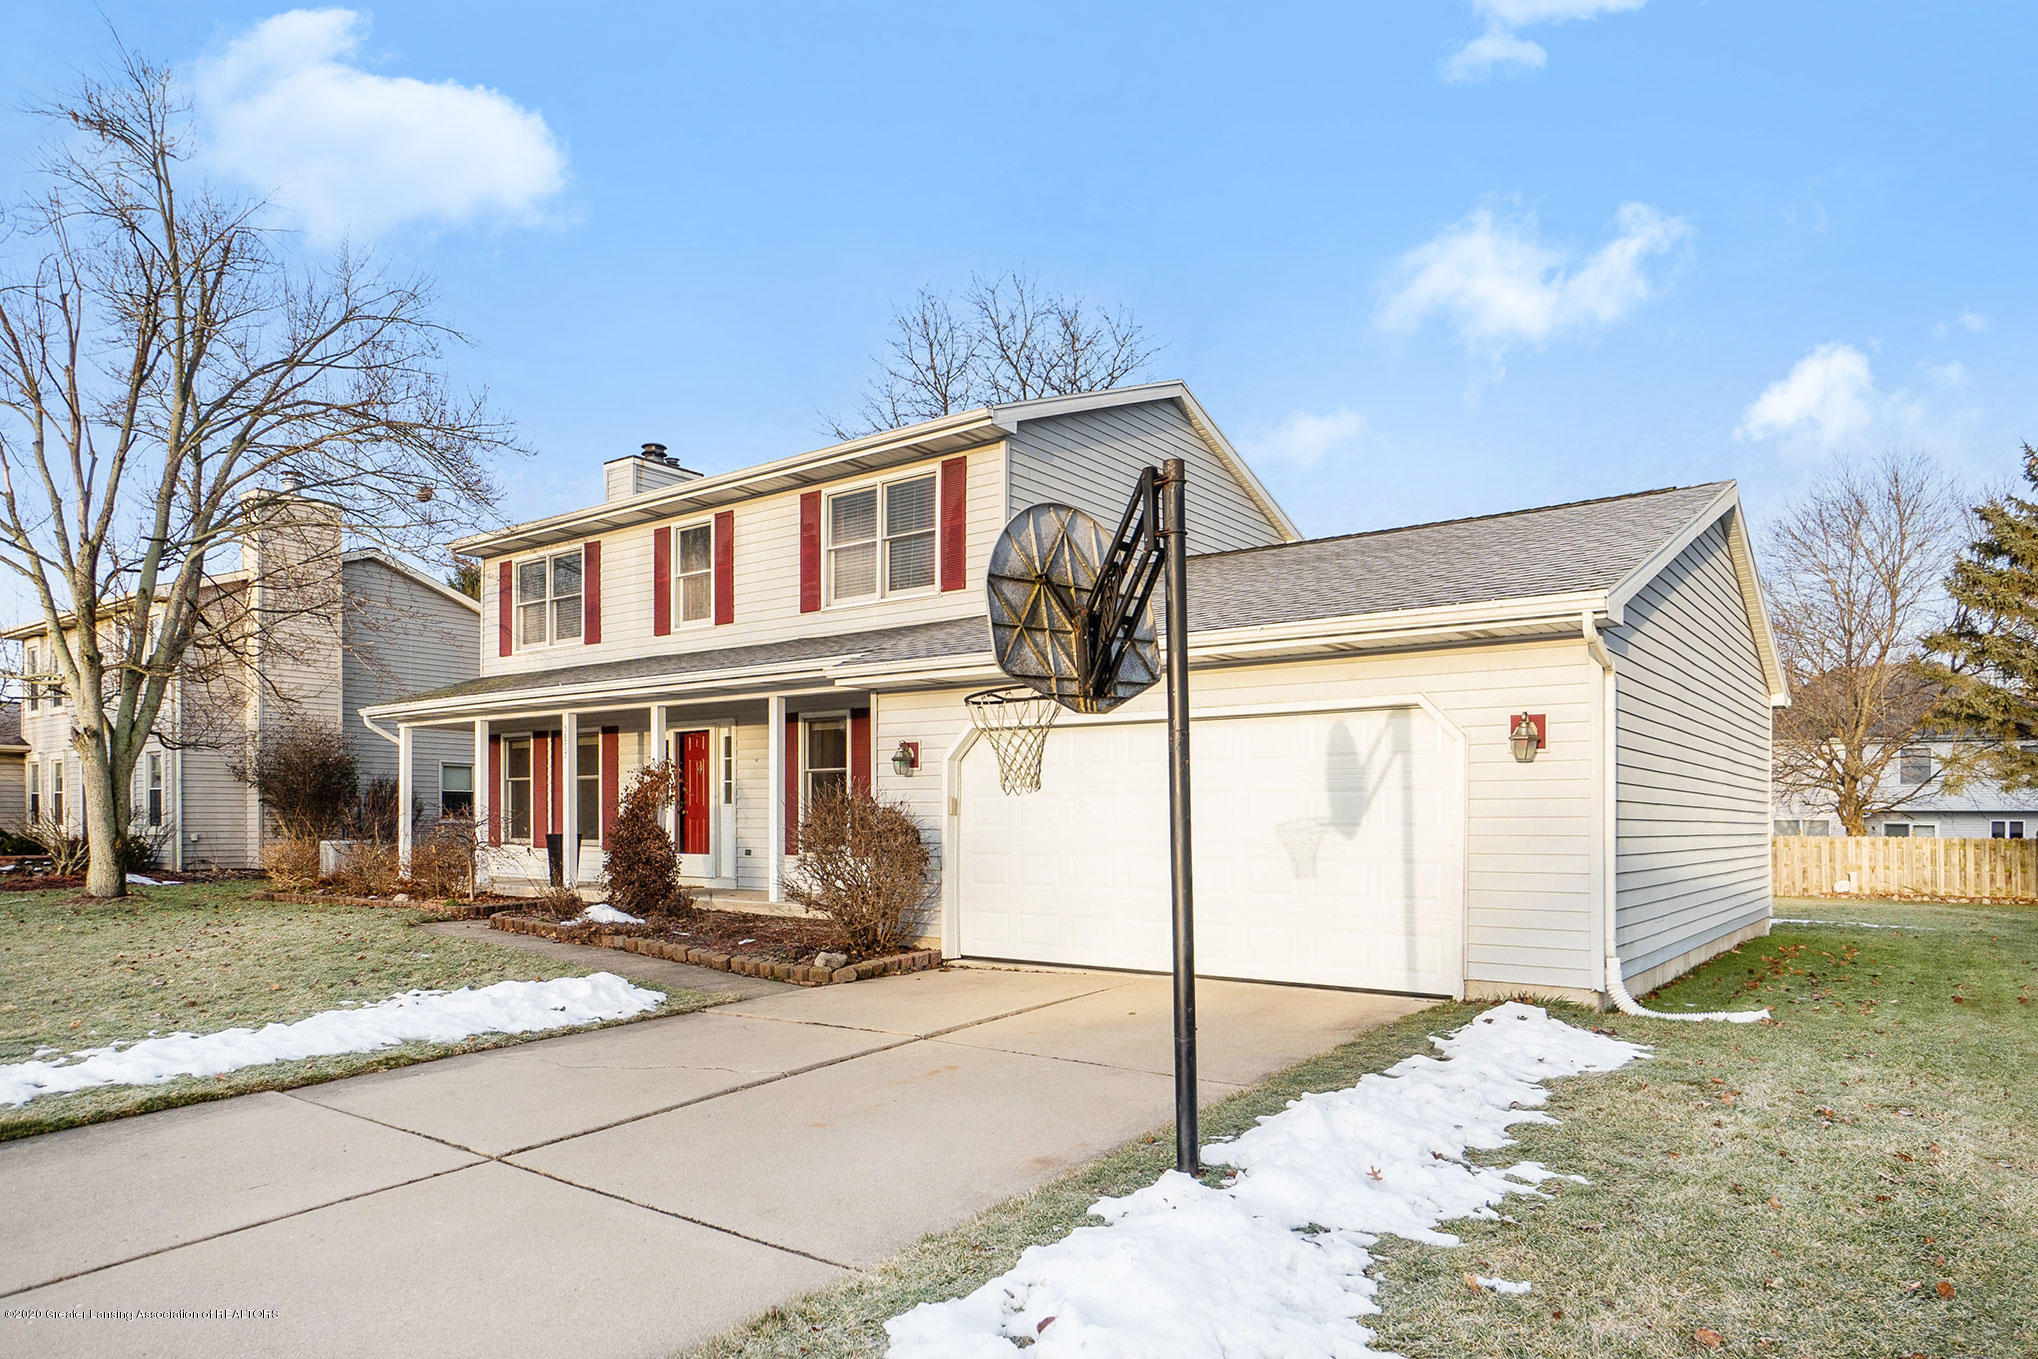 5897 Buttonwood Dr - 2 - 2